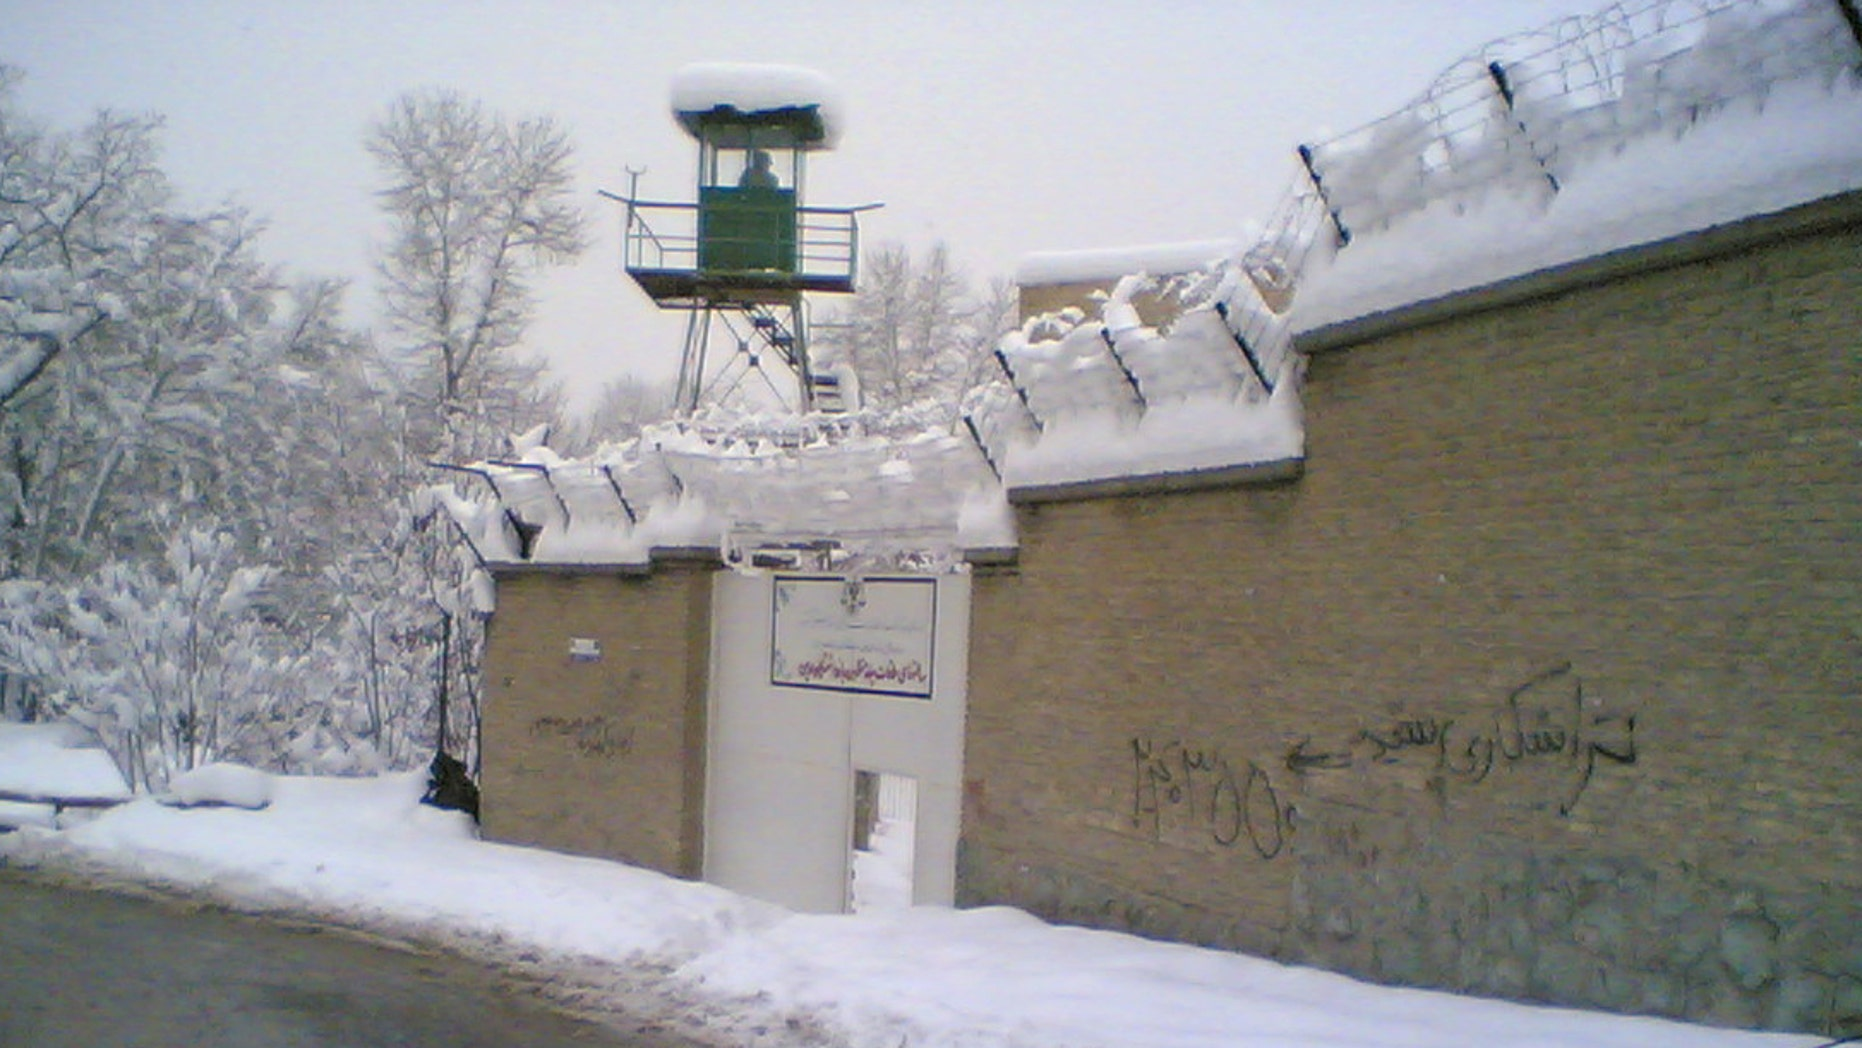 Iran's notoriously brutal Evin Prison in northern Tehran